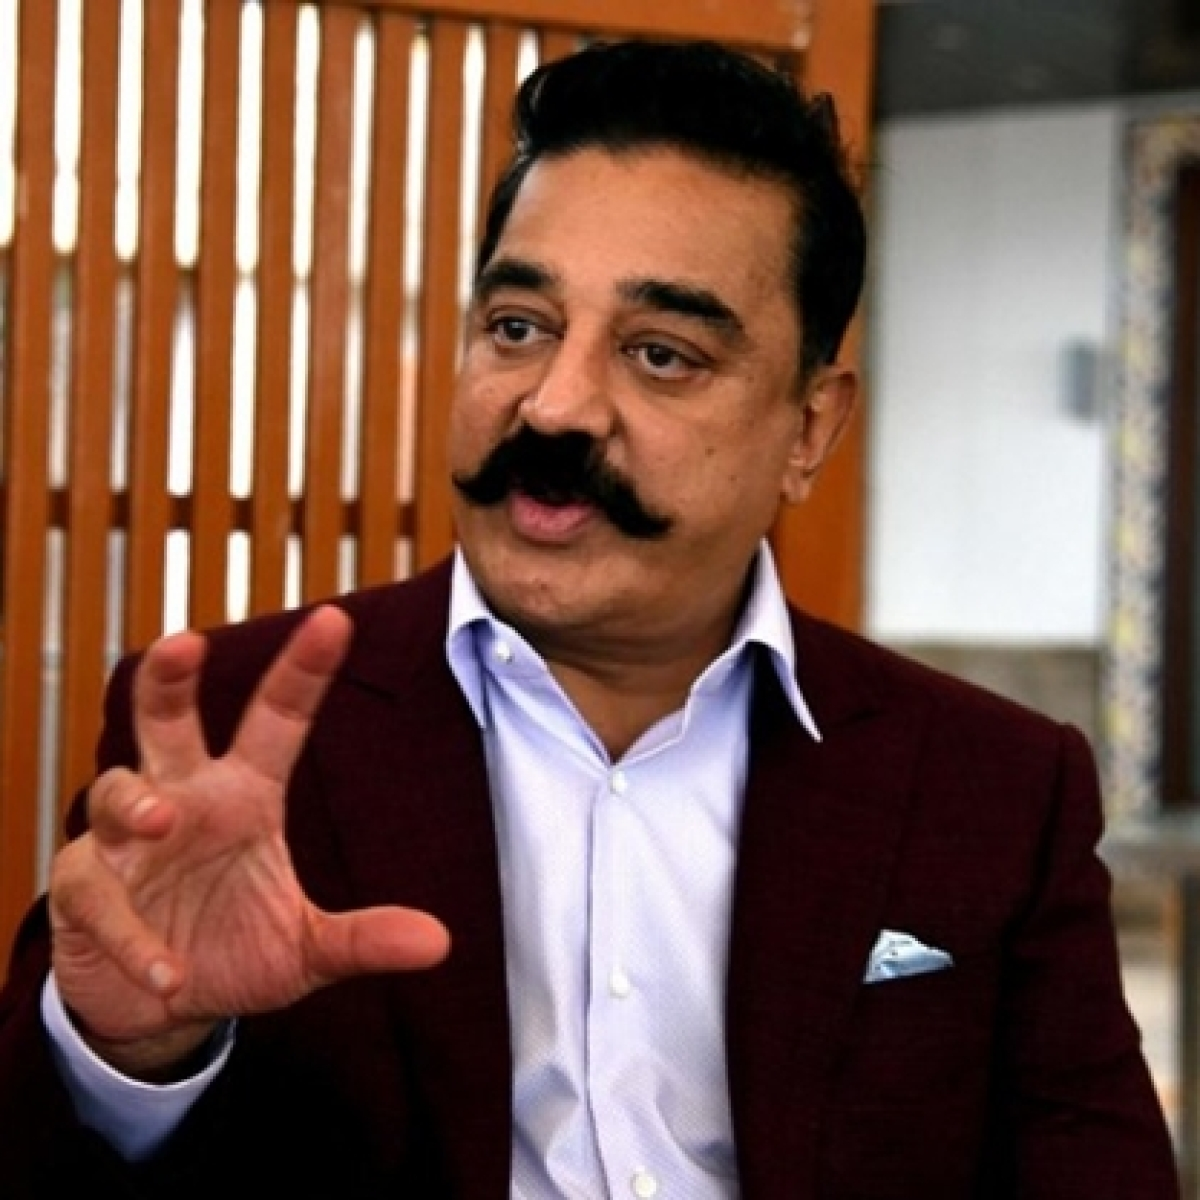 Kamal Haasan shares song of hope 'Avirum Album' during COVID-19 lockdown